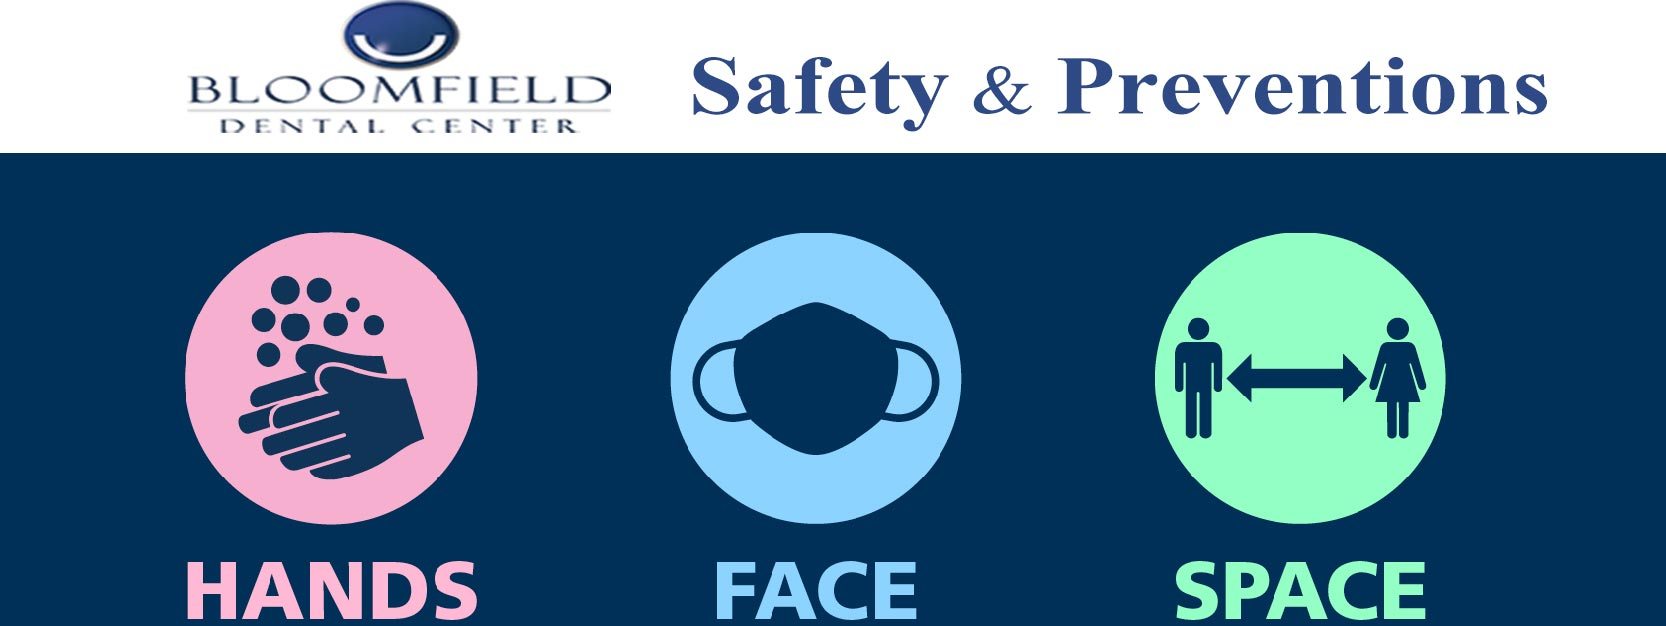 COVID SAFETY AND VISITOR INFORMATION | Bloomfield Dental Center